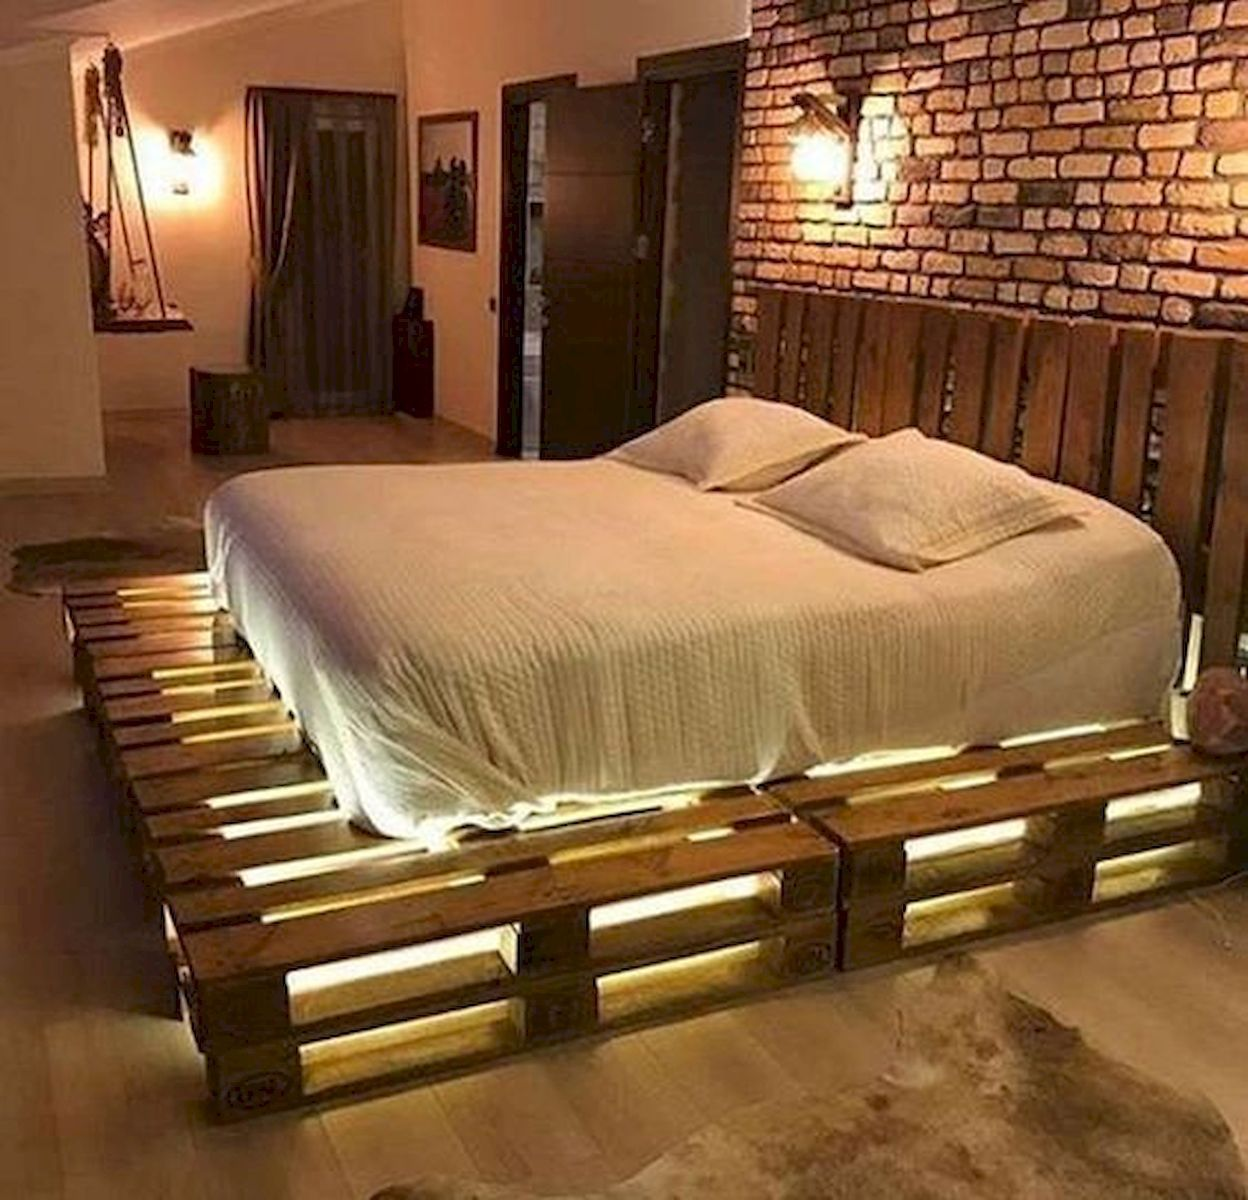 These Pieces Of Wood Very Well Can Be Used In The Manufacture Of Furniture Starting From Beds Furnit Pallet Home Decor Pallet Furniture Bedroom Diy Pallet Bed